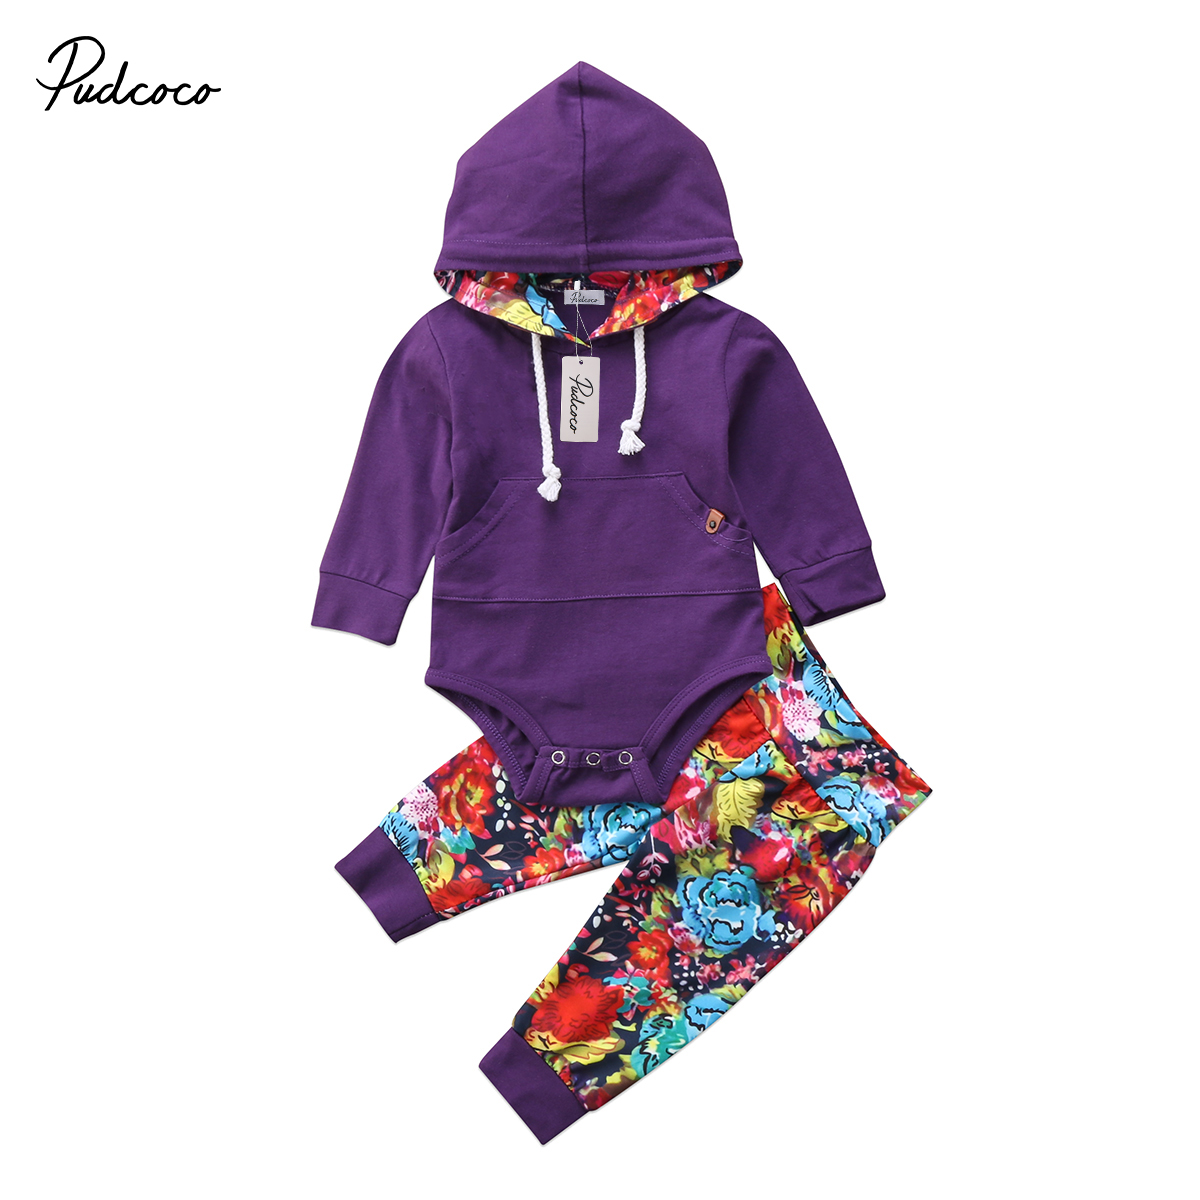 2Pcs Fashion Newborn Toddler Kids Baby Girl Hoodie Top Floral Pants Home Outfit Set Clothes Set 0-24M